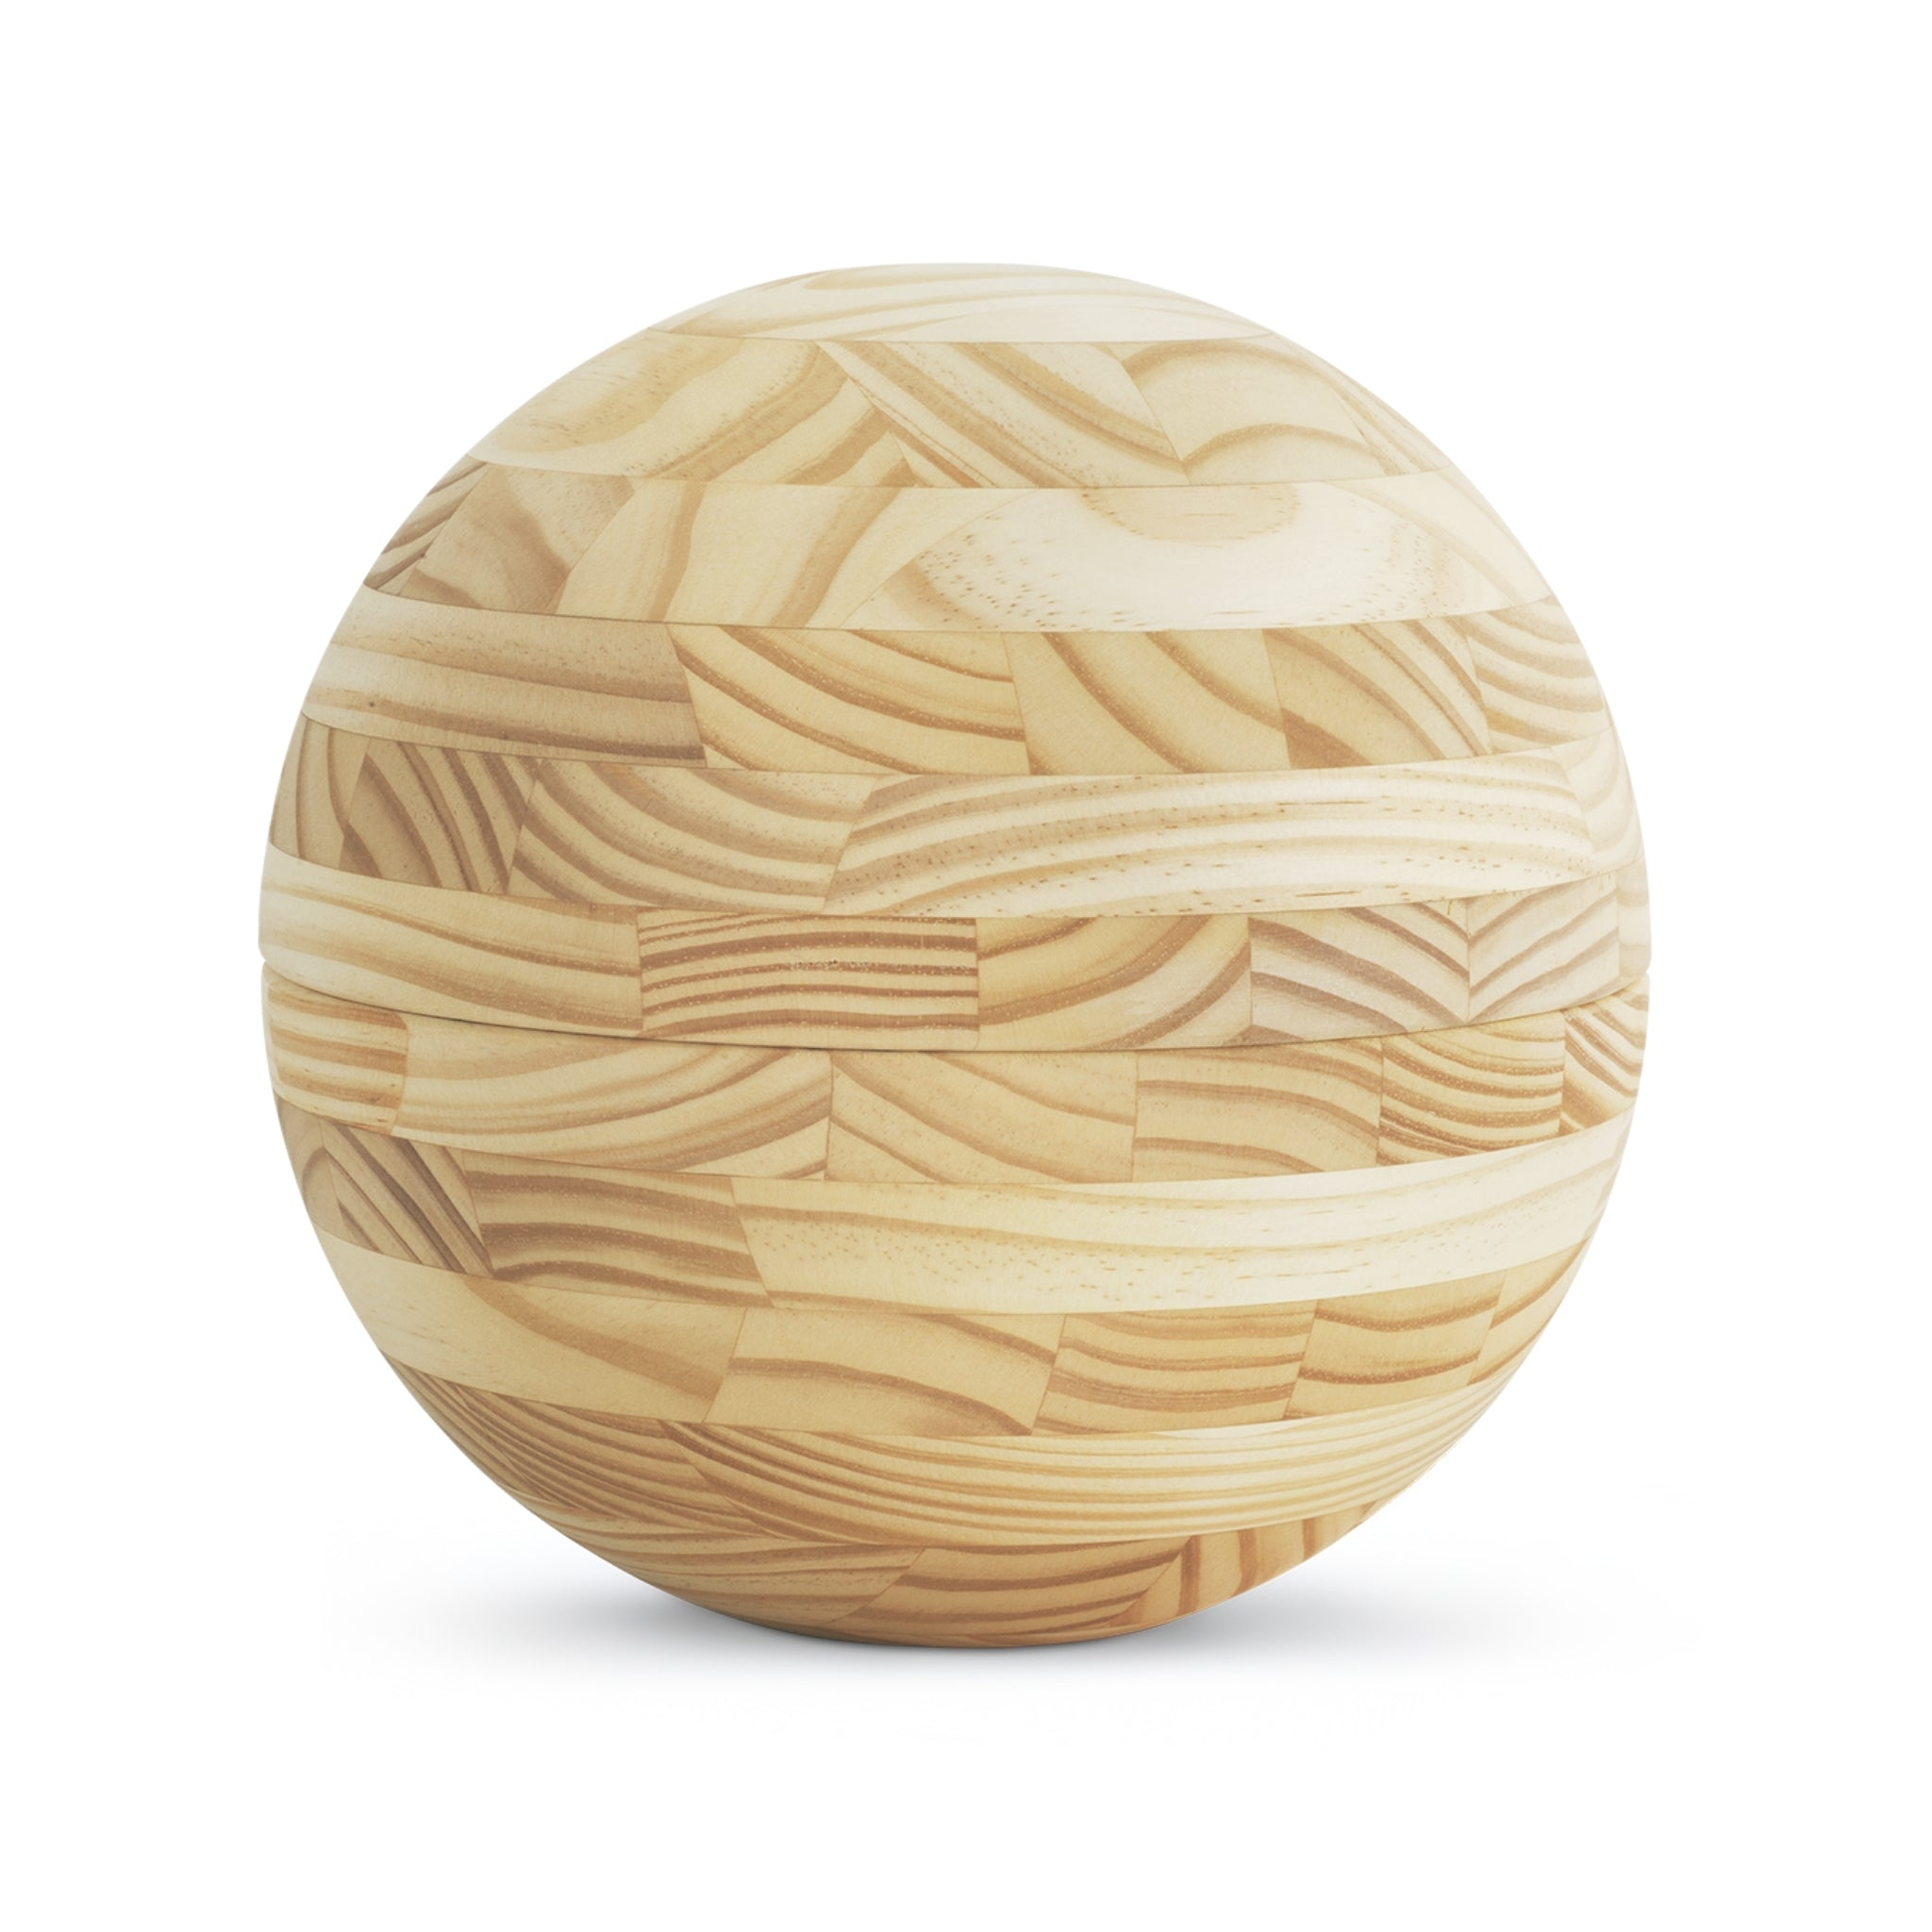 Roundwood Sphere  Cremation Ashes Urn Pine